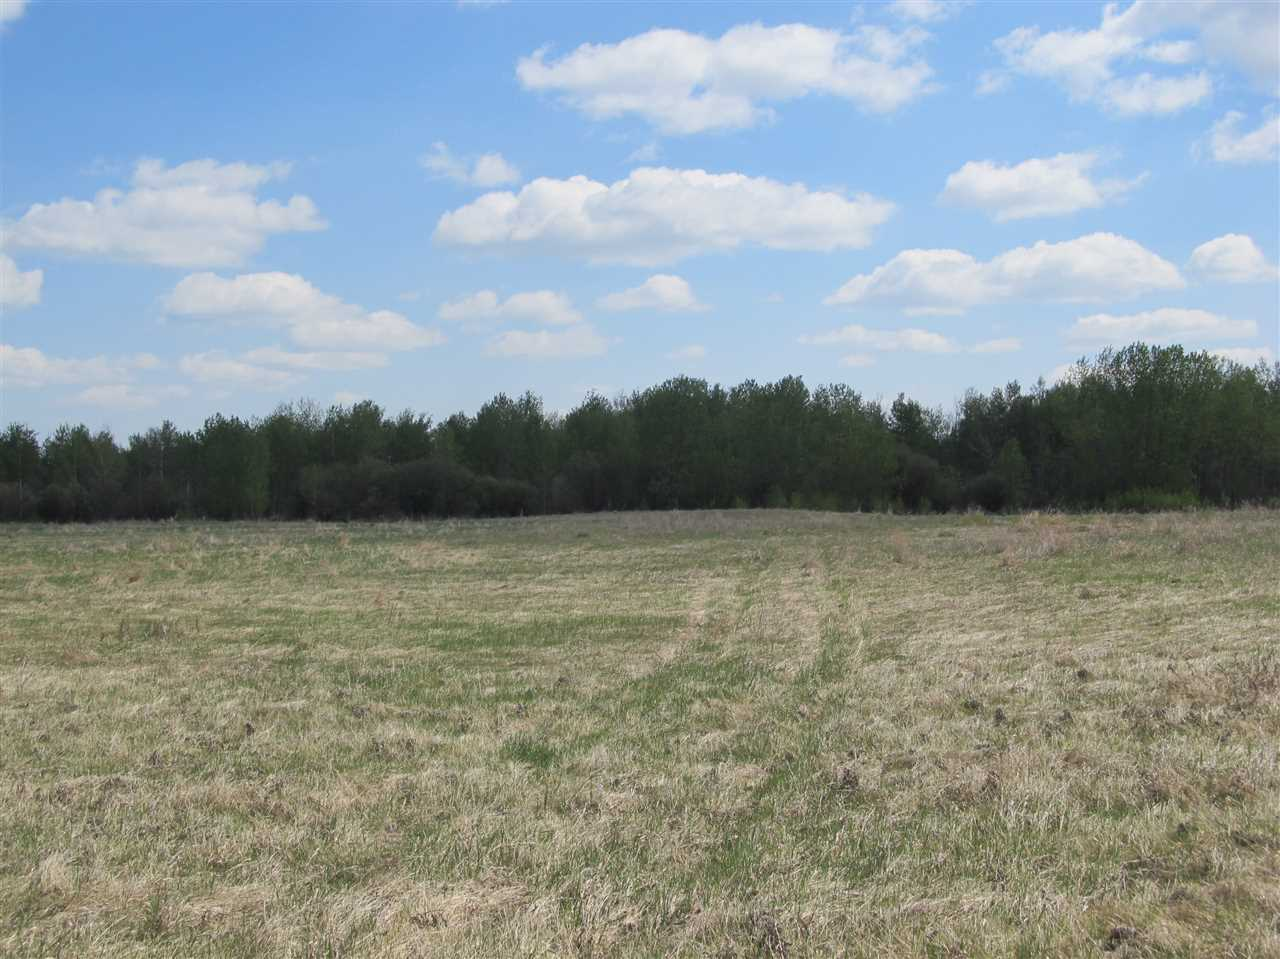 Photo 4: RR 204 HWY 661: Rural Thorhild County Rural Land/Vacant Lot for sale : MLS(r) # E4065910